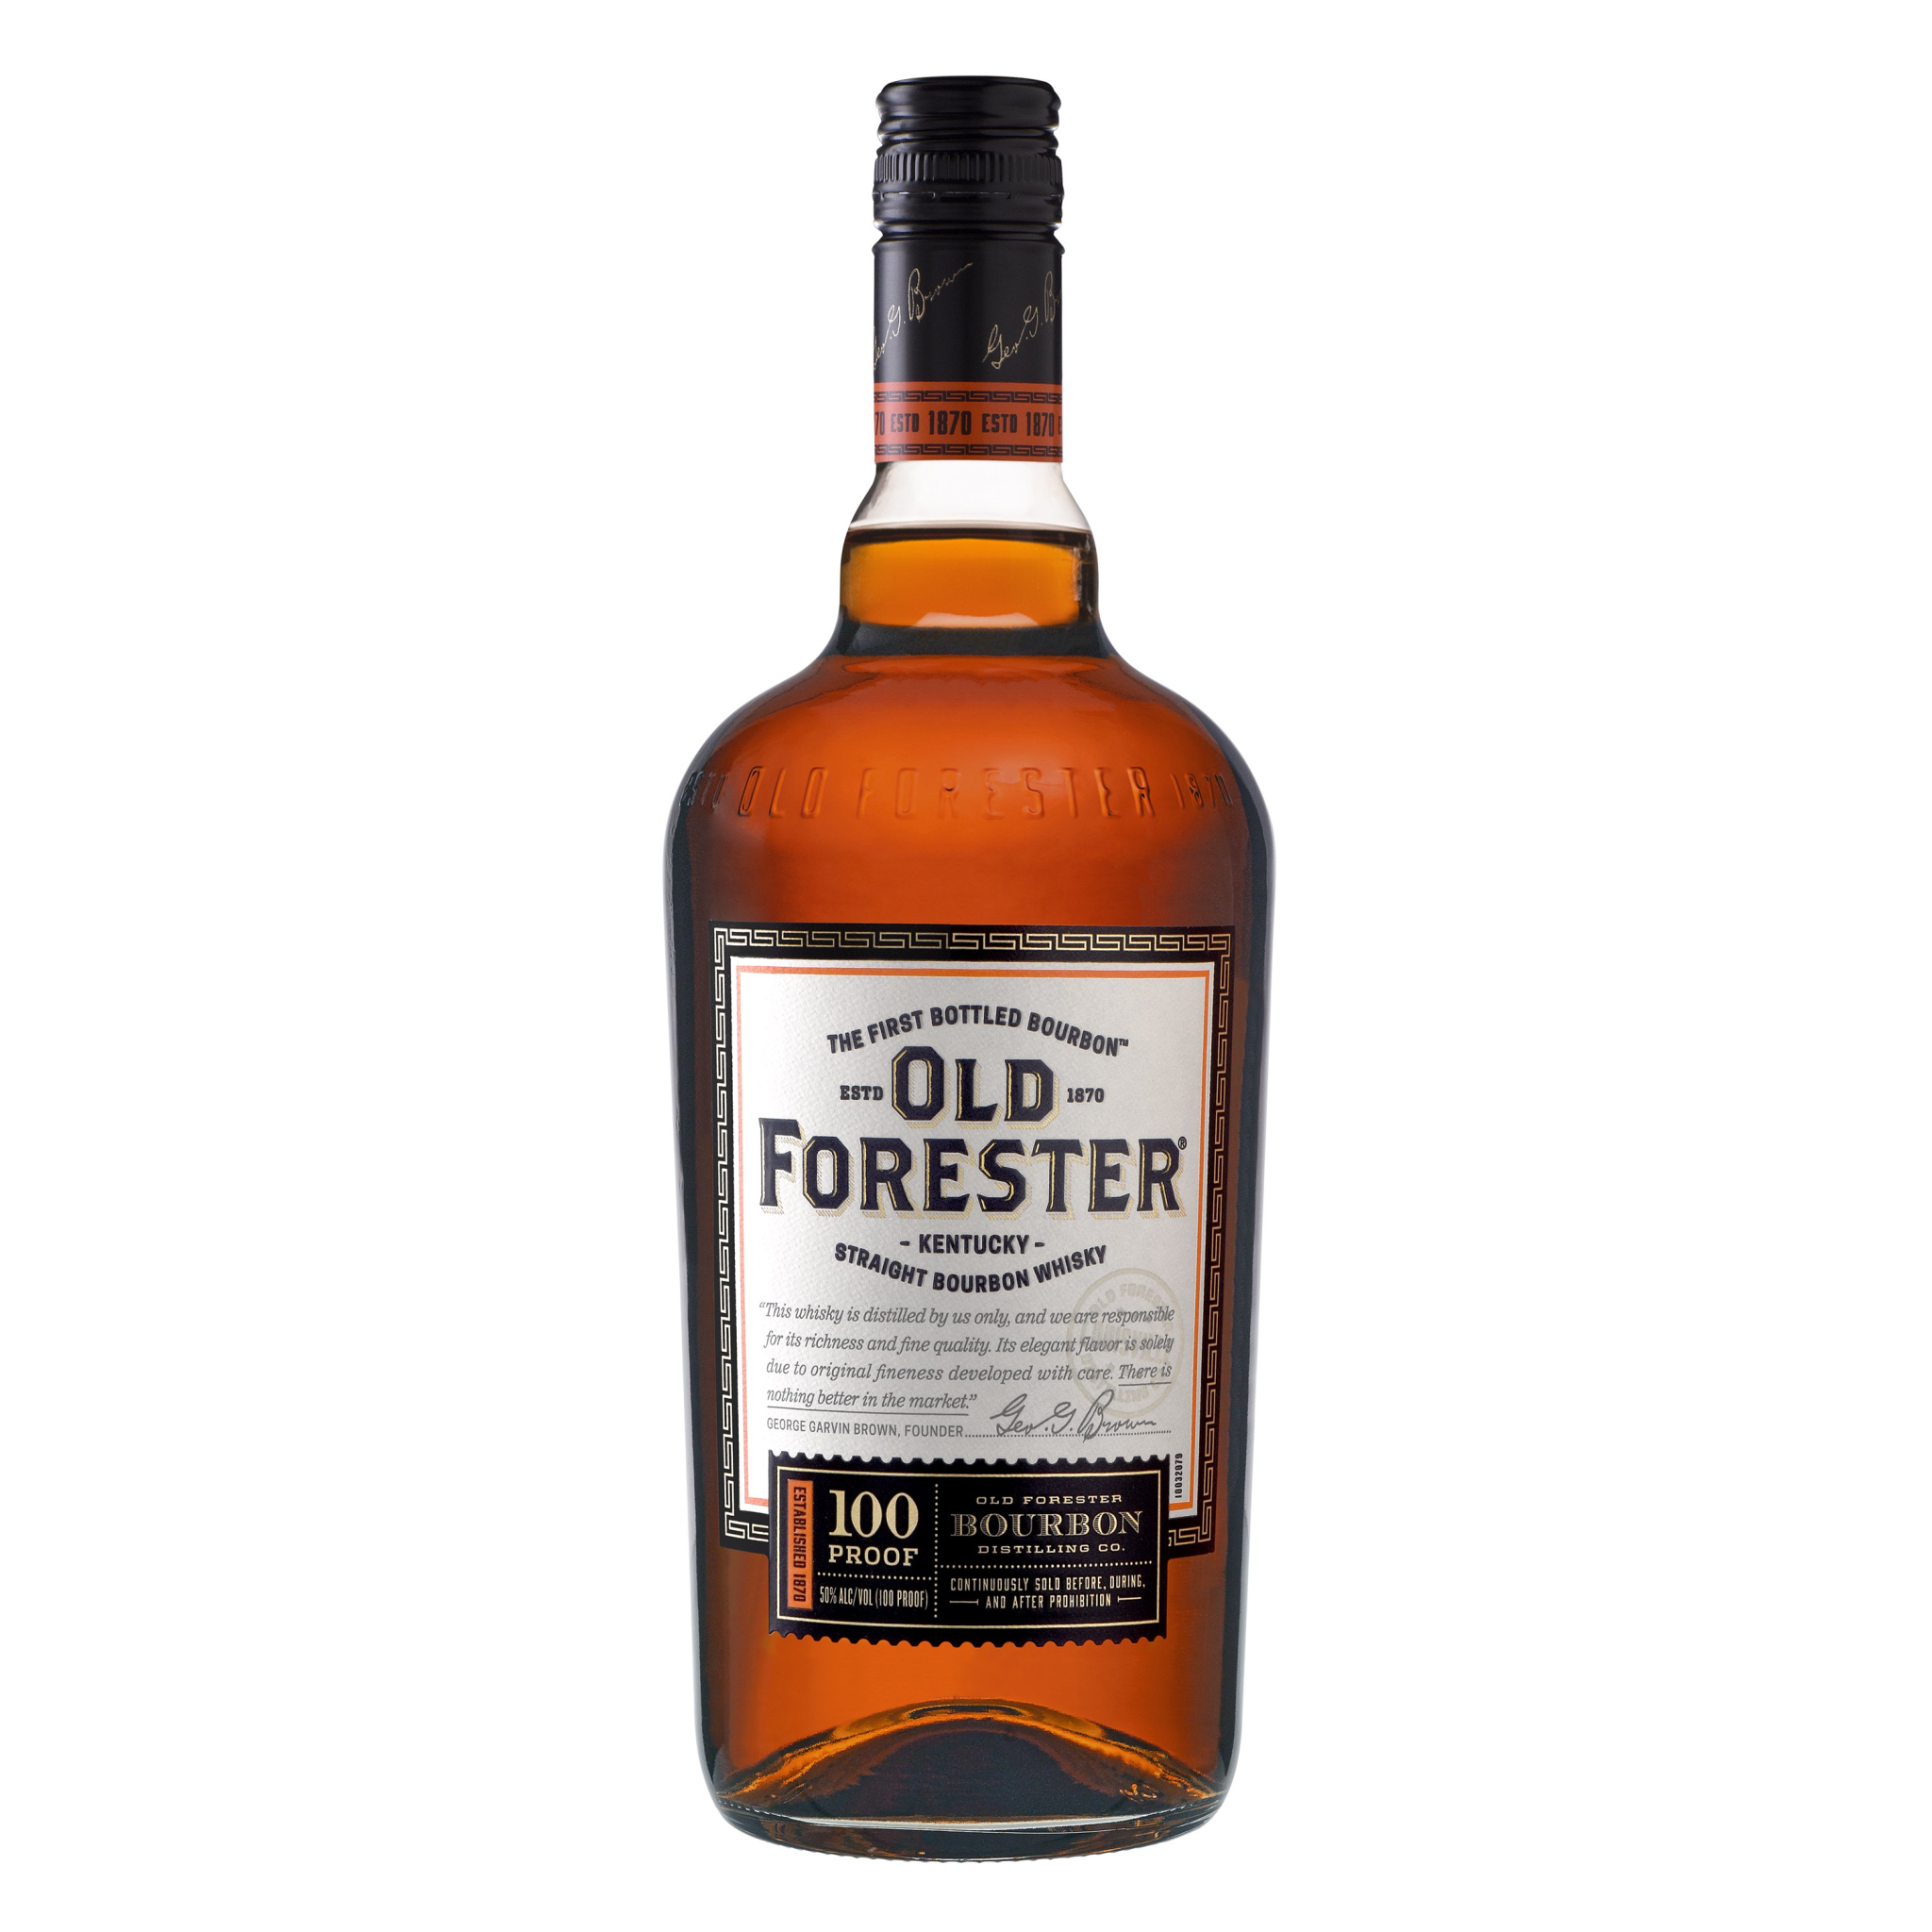 Old Forester Straight Bourbon Whiskey ABV 50% 750 ML